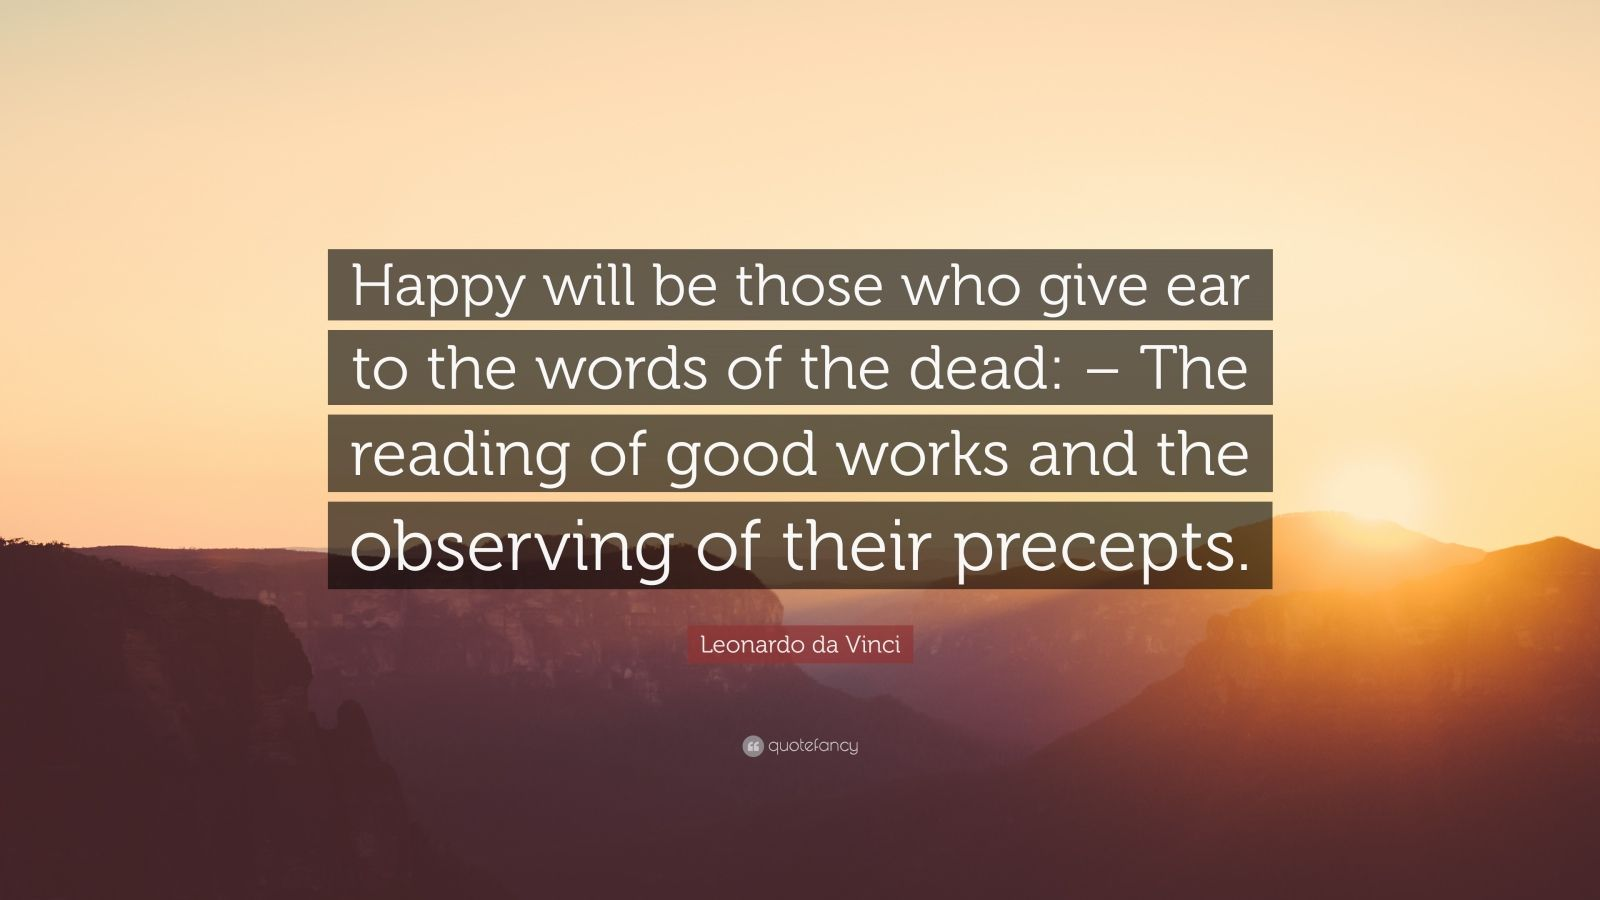 """Leonardo da Vinci Quote: """"Happy will be those who give ear to the words of the dead: – The reading of good works and the observing of their precepts."""""""